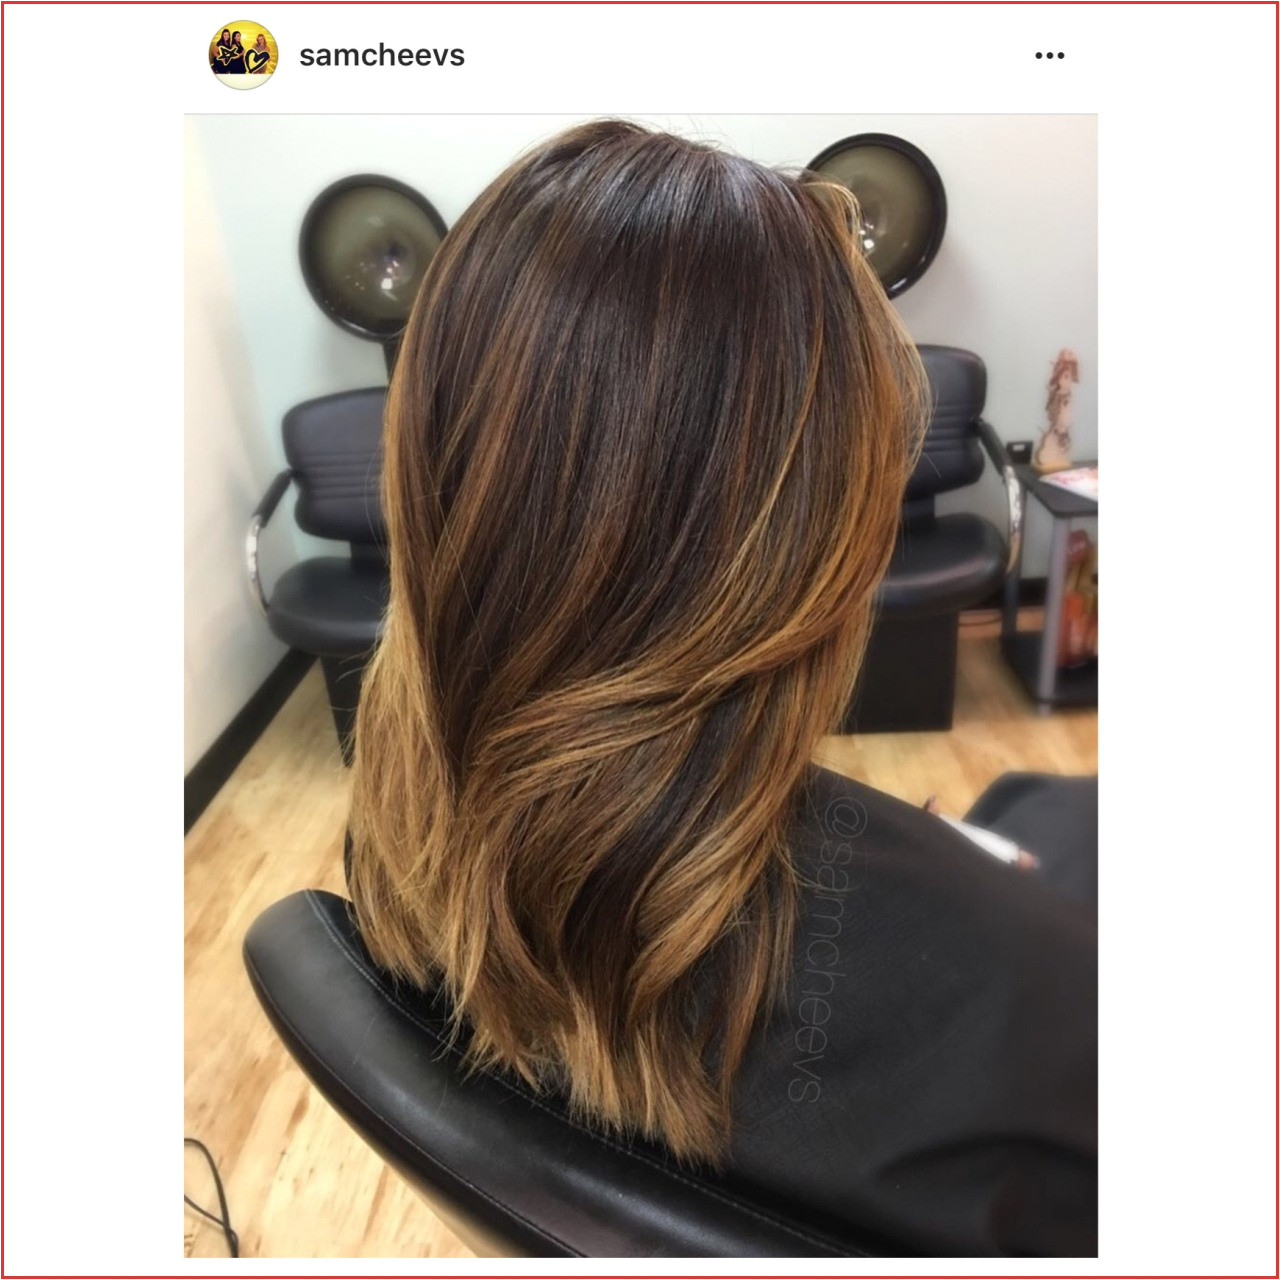 Hair Cuttery Hair Color Hair Color Easy Hairstyles Step By Step Picture New Hair · Hair Cuttery Hair Color Haircuts Long